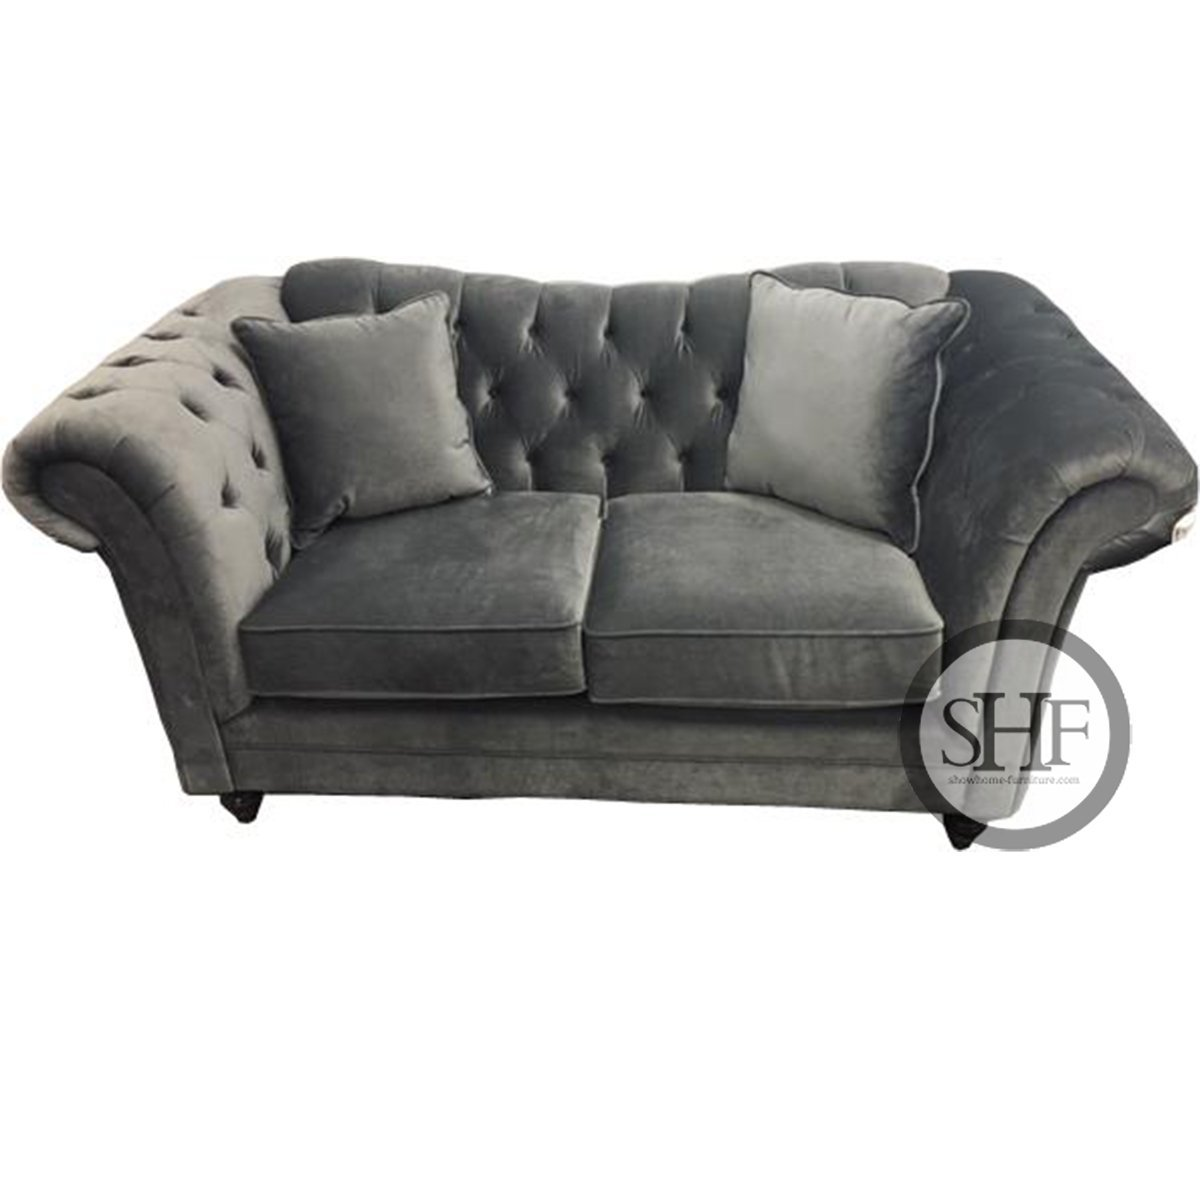 Custom Flair Love Seat - Made in Canada - Showhome Furniture